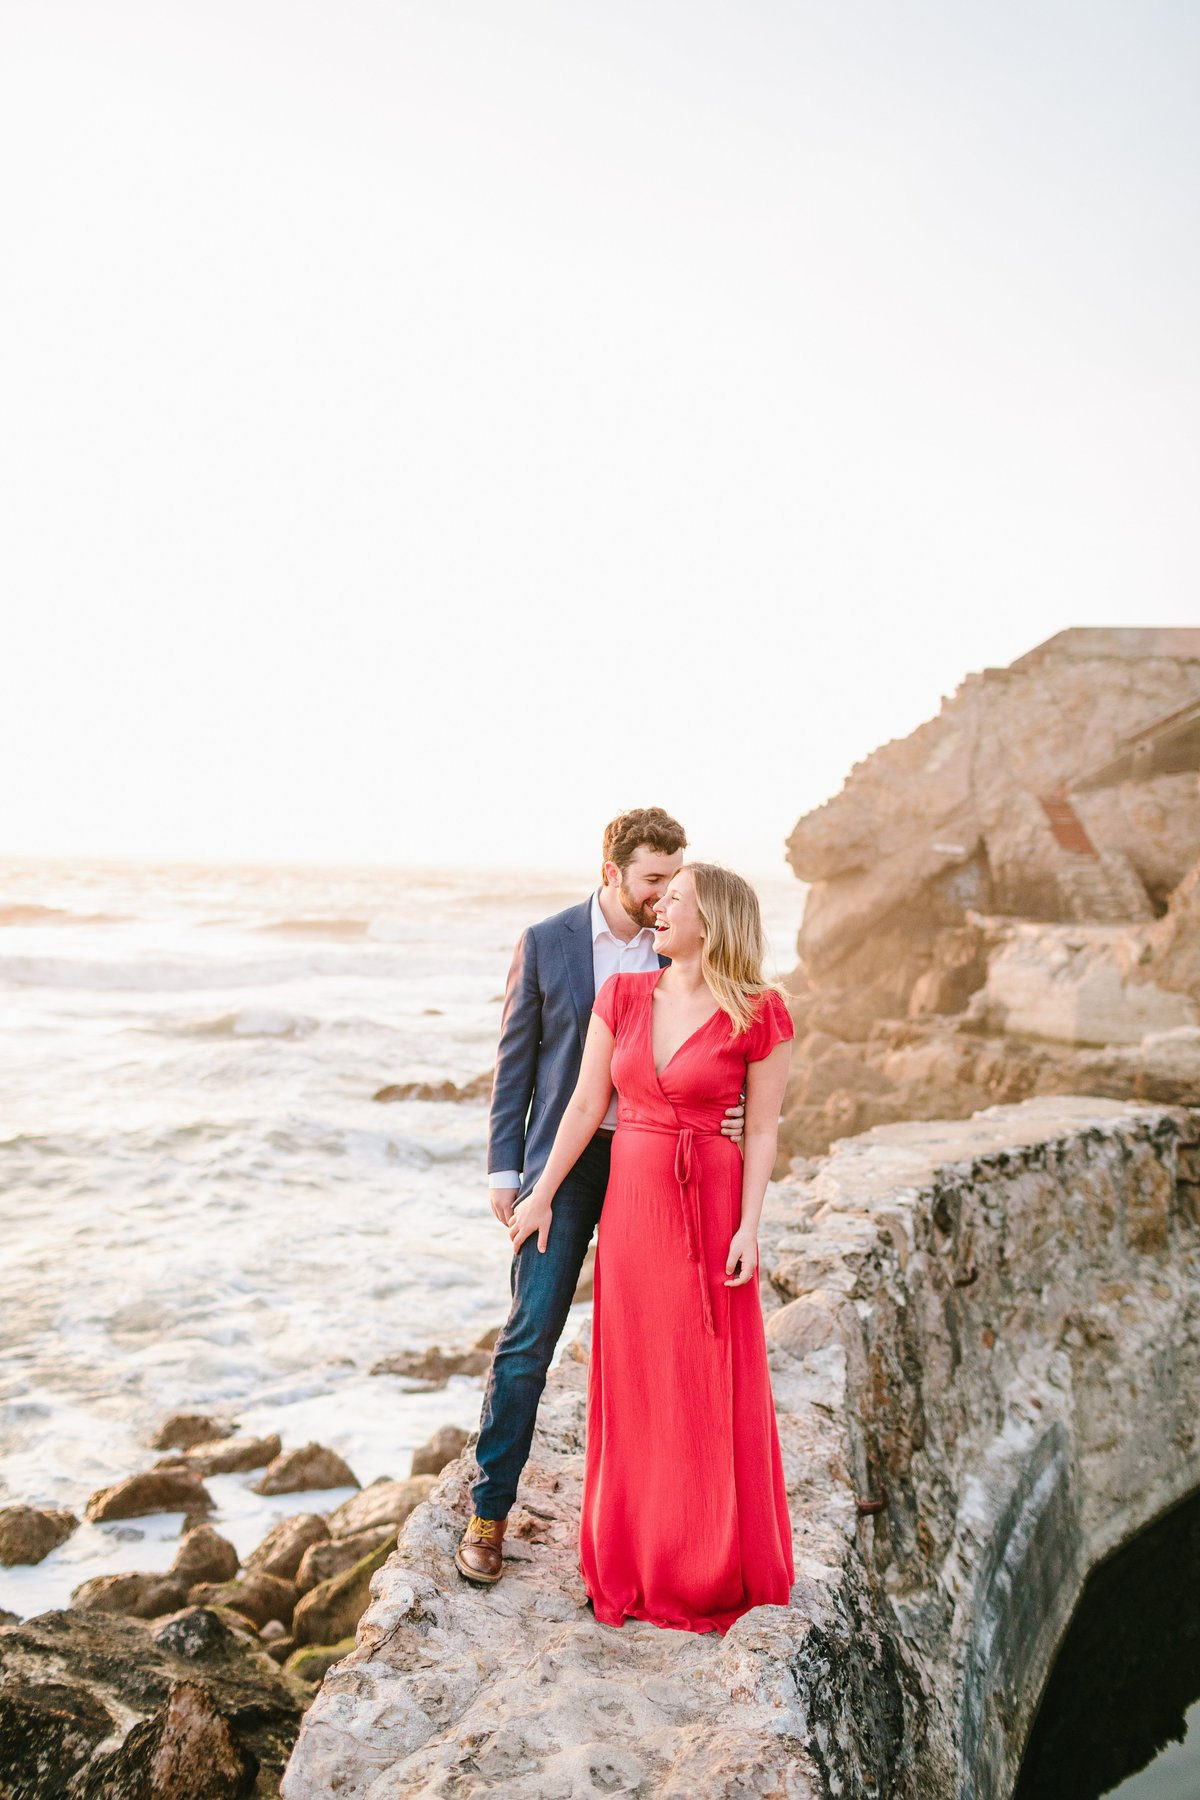 Best California Engagement Photographer_Jodee Debes Photography_202